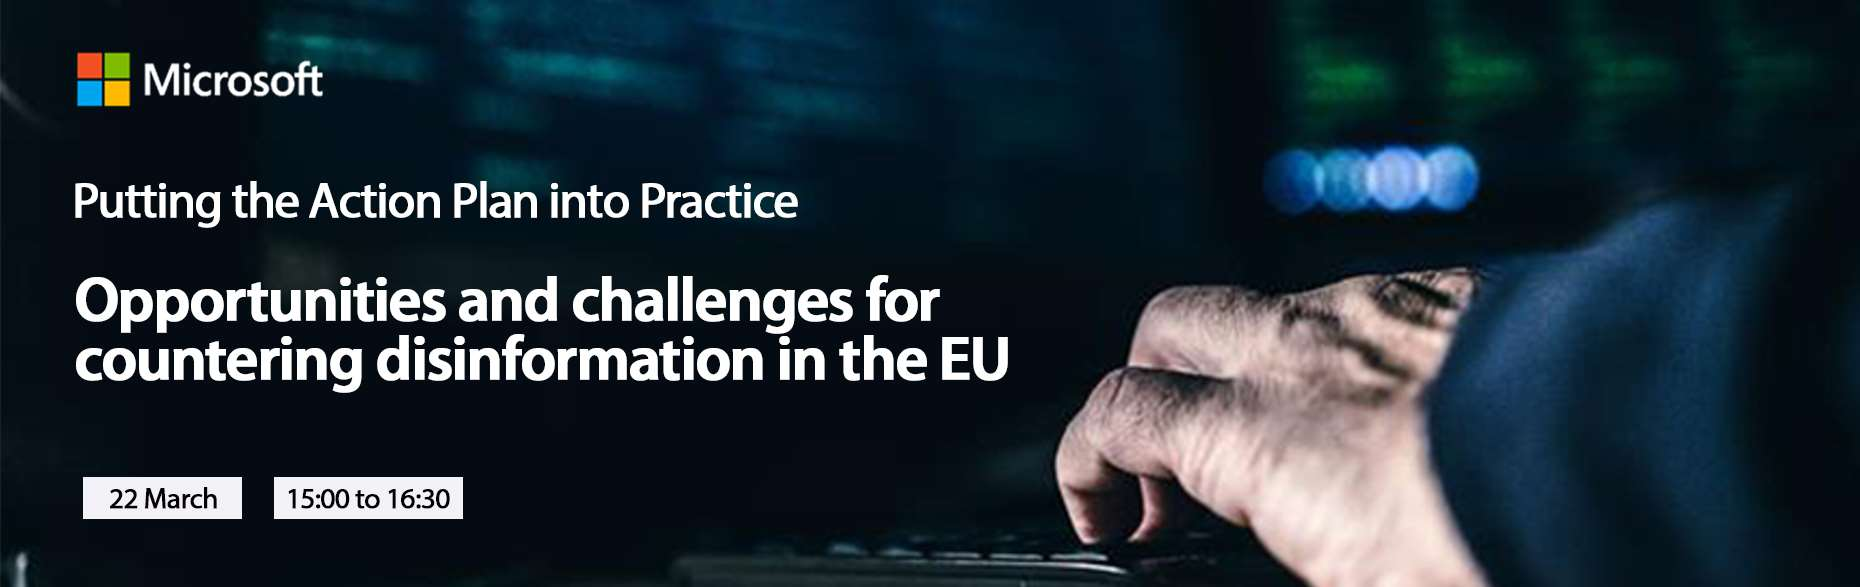 Opportunities and challenges for countering disinformation in the EU: Putting the Action Plan into Practice